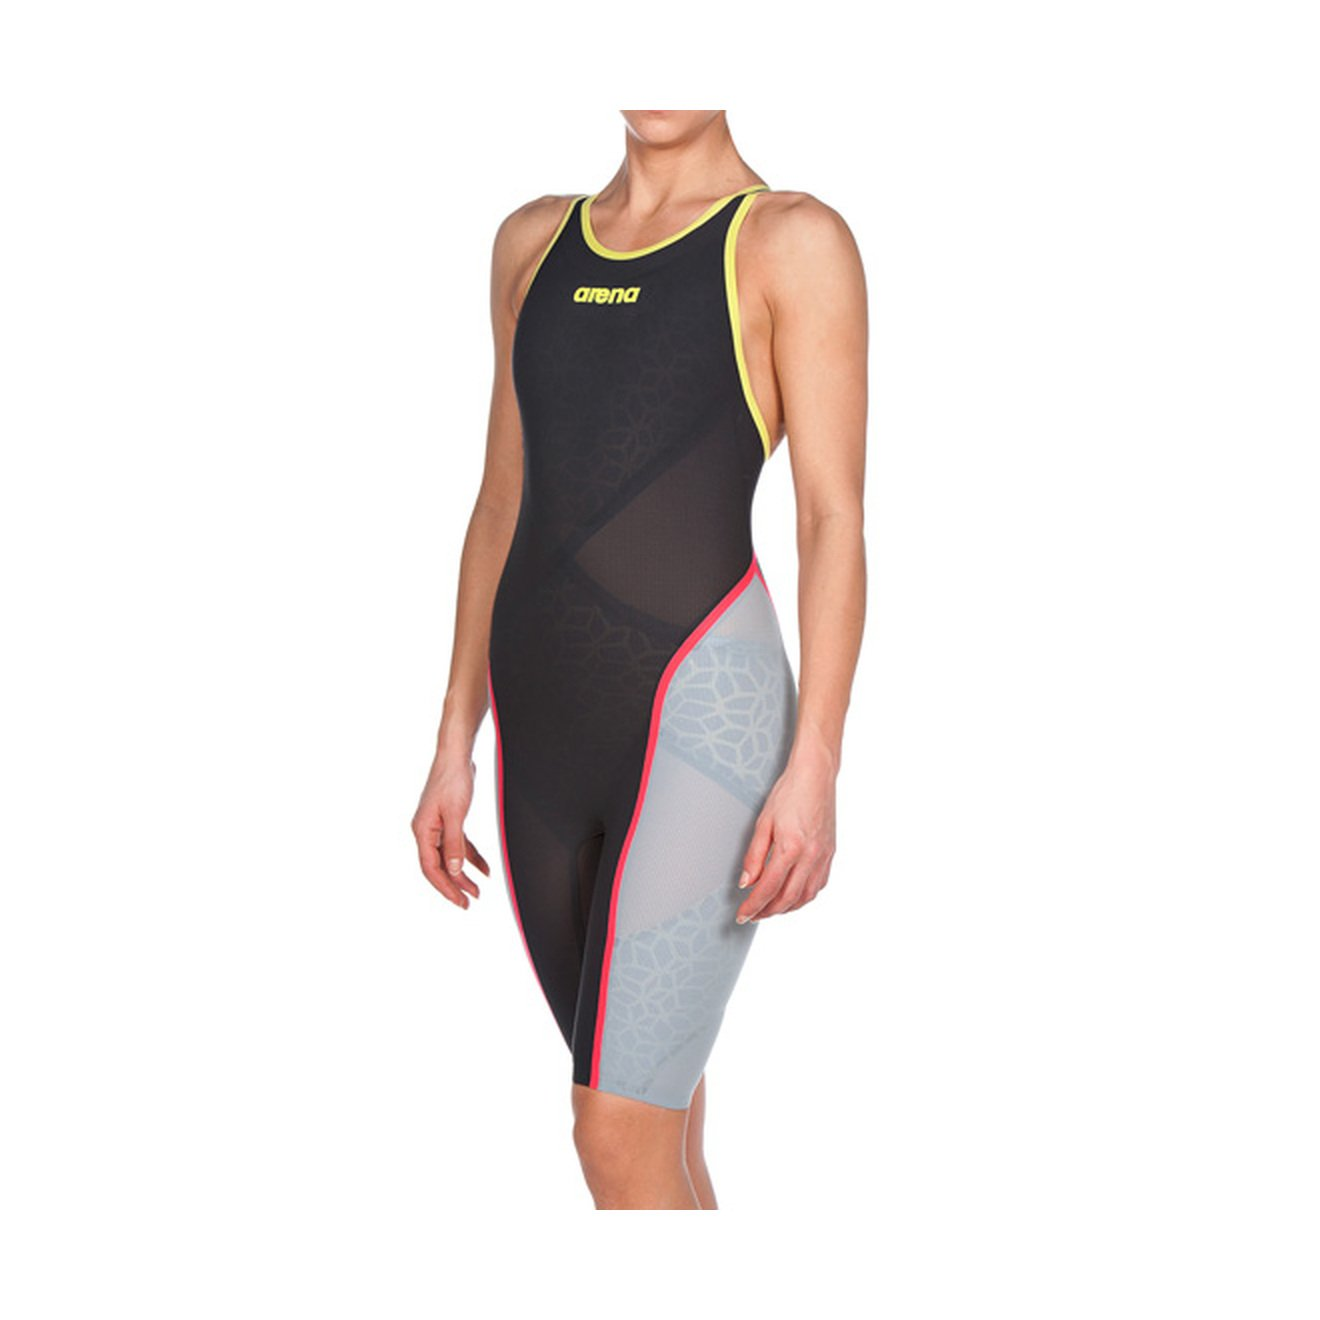 Arena Powerskin Carbon Ultra Closed Back Kneeskin 2A806